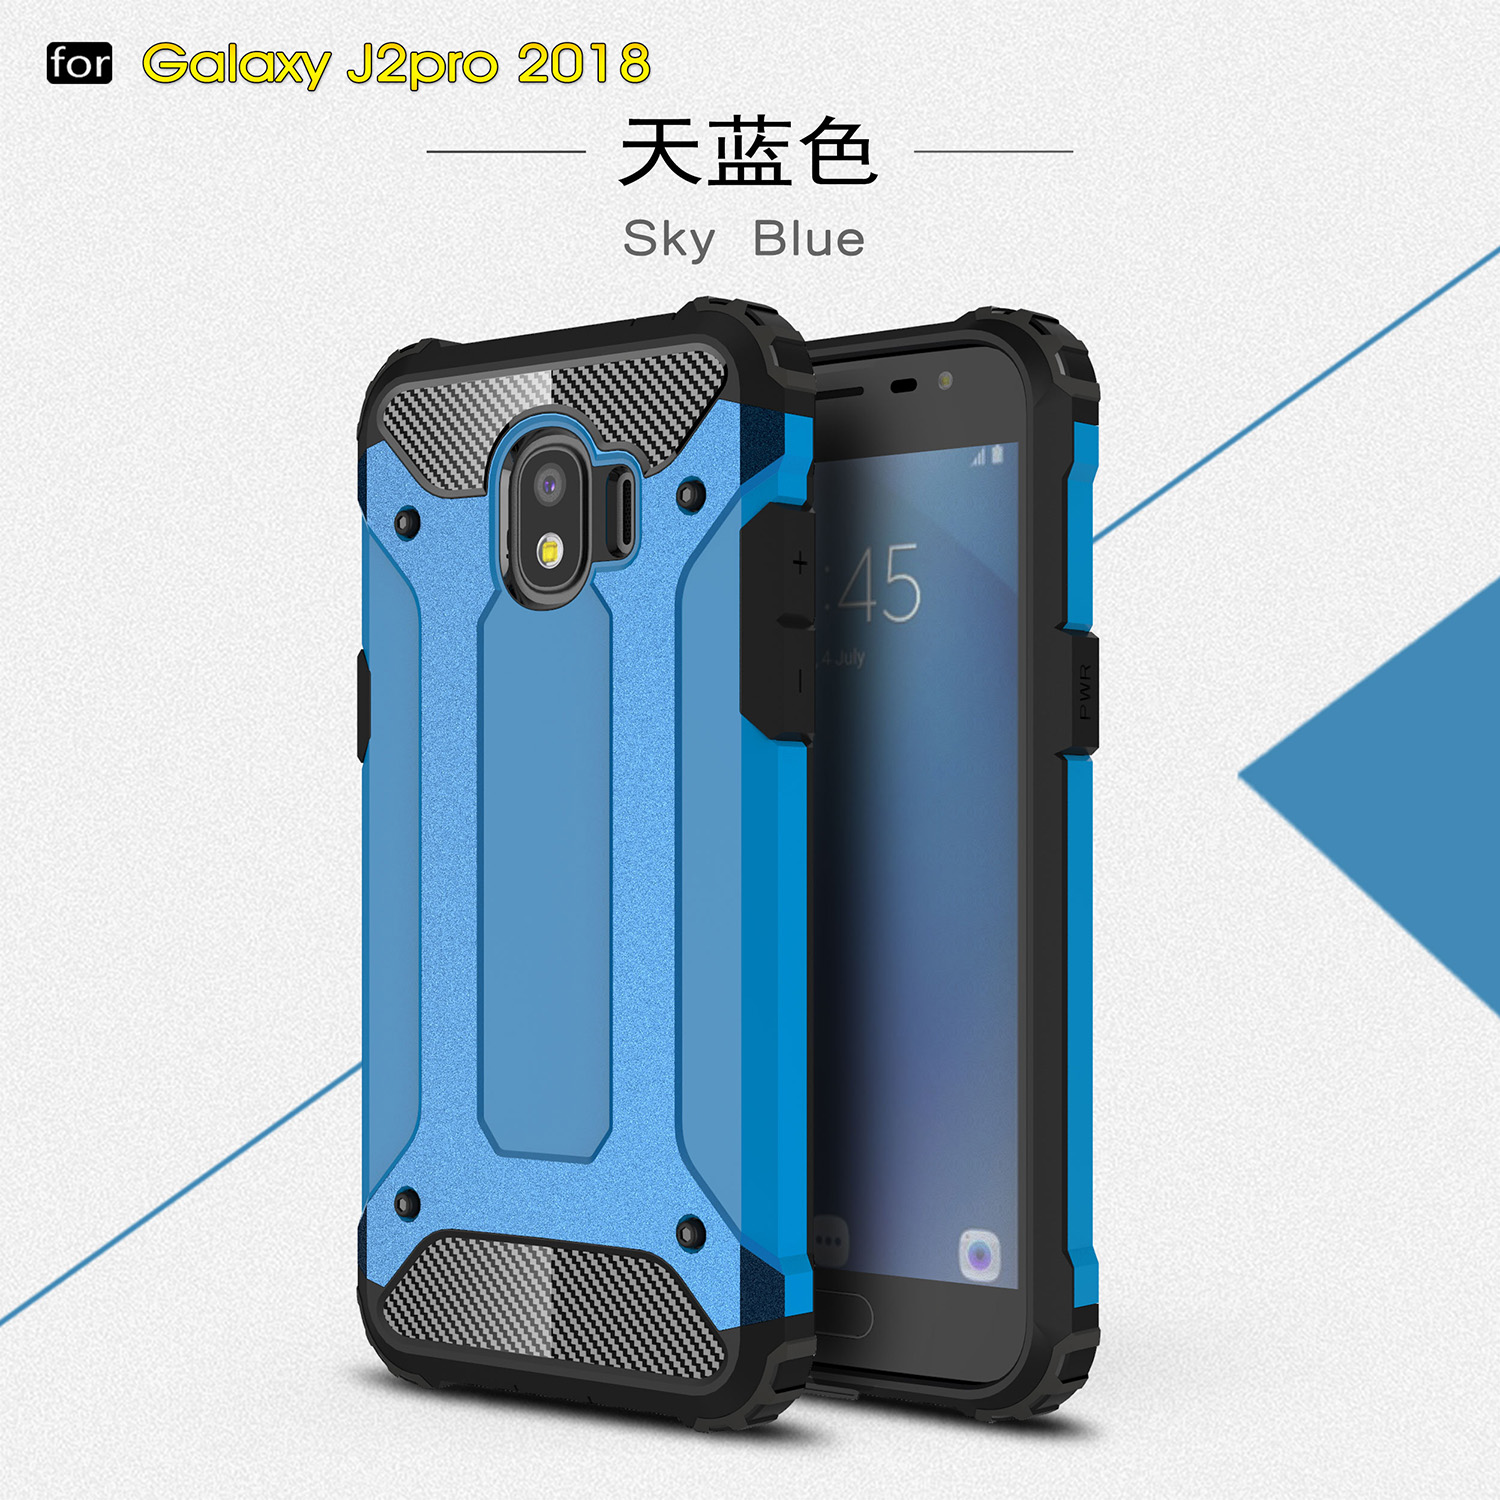 coque samsung galaxy grand prime pro 2018